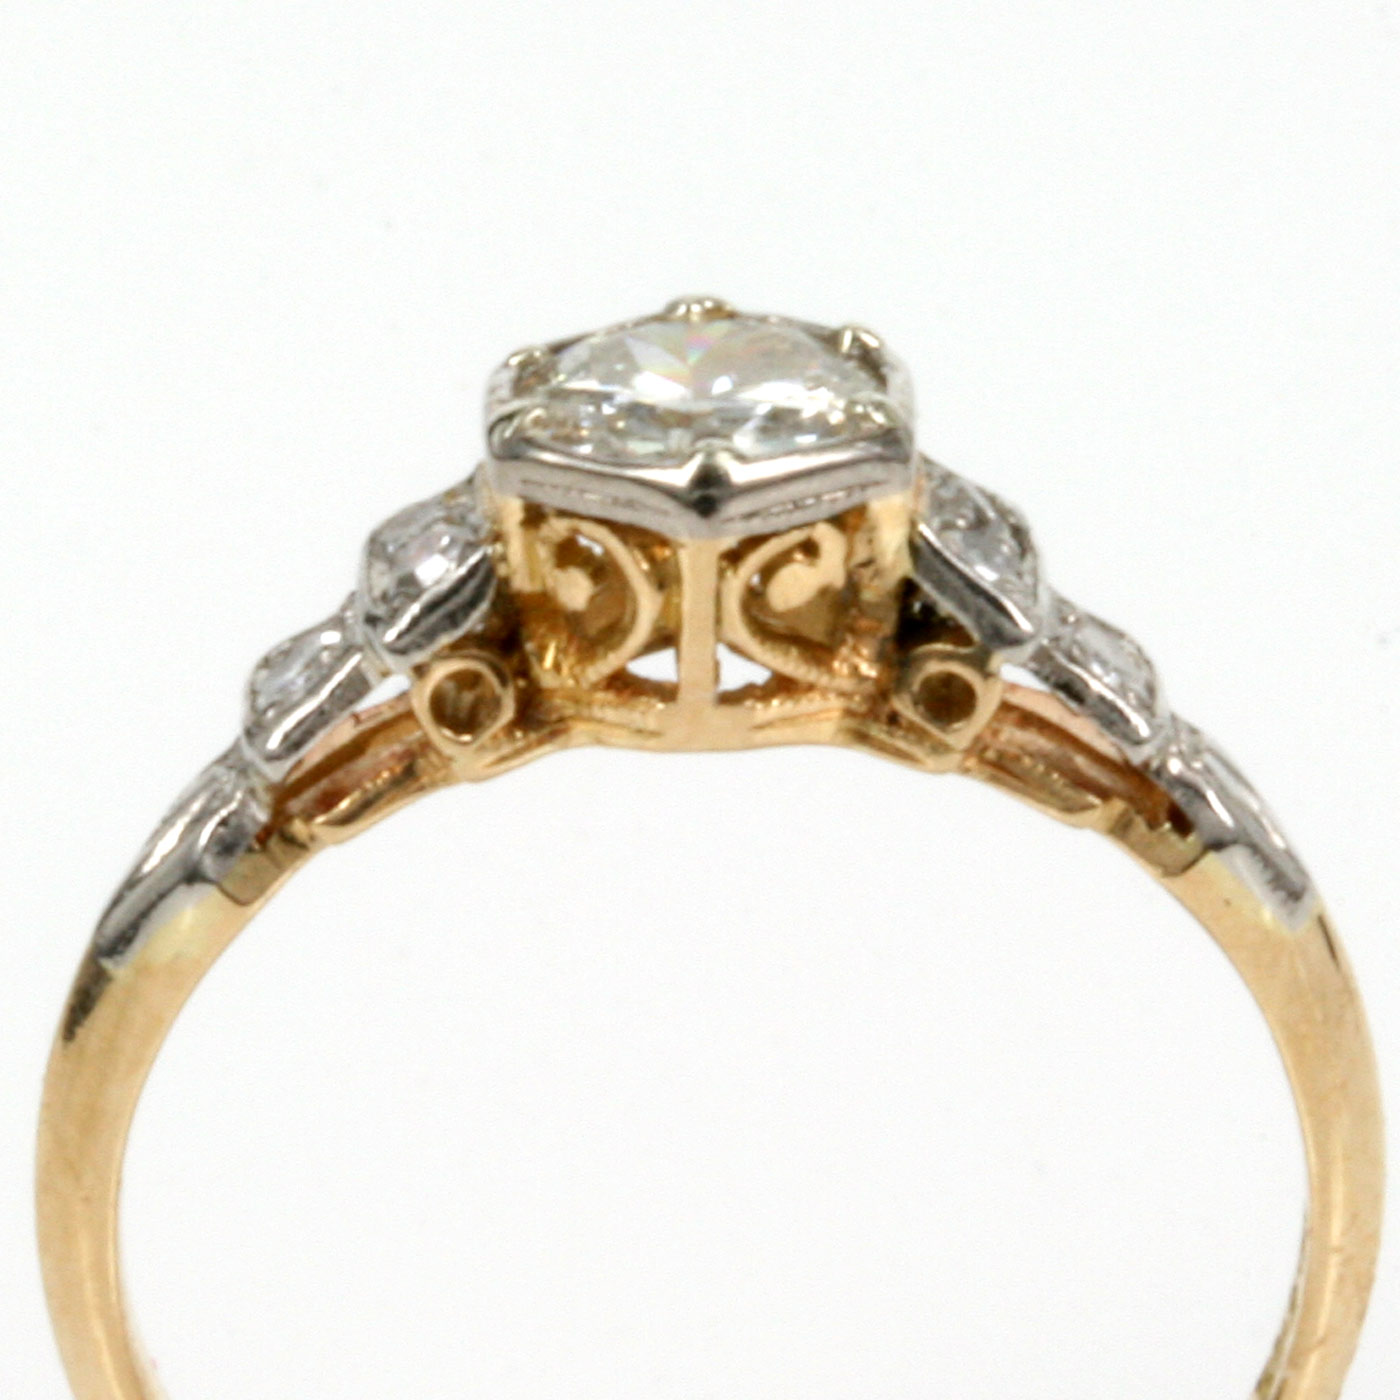 band added yellow revitalized story wide jewelry rings later and marnies antique weisman from gold ring grandma great white with repair diamond pretty wedding